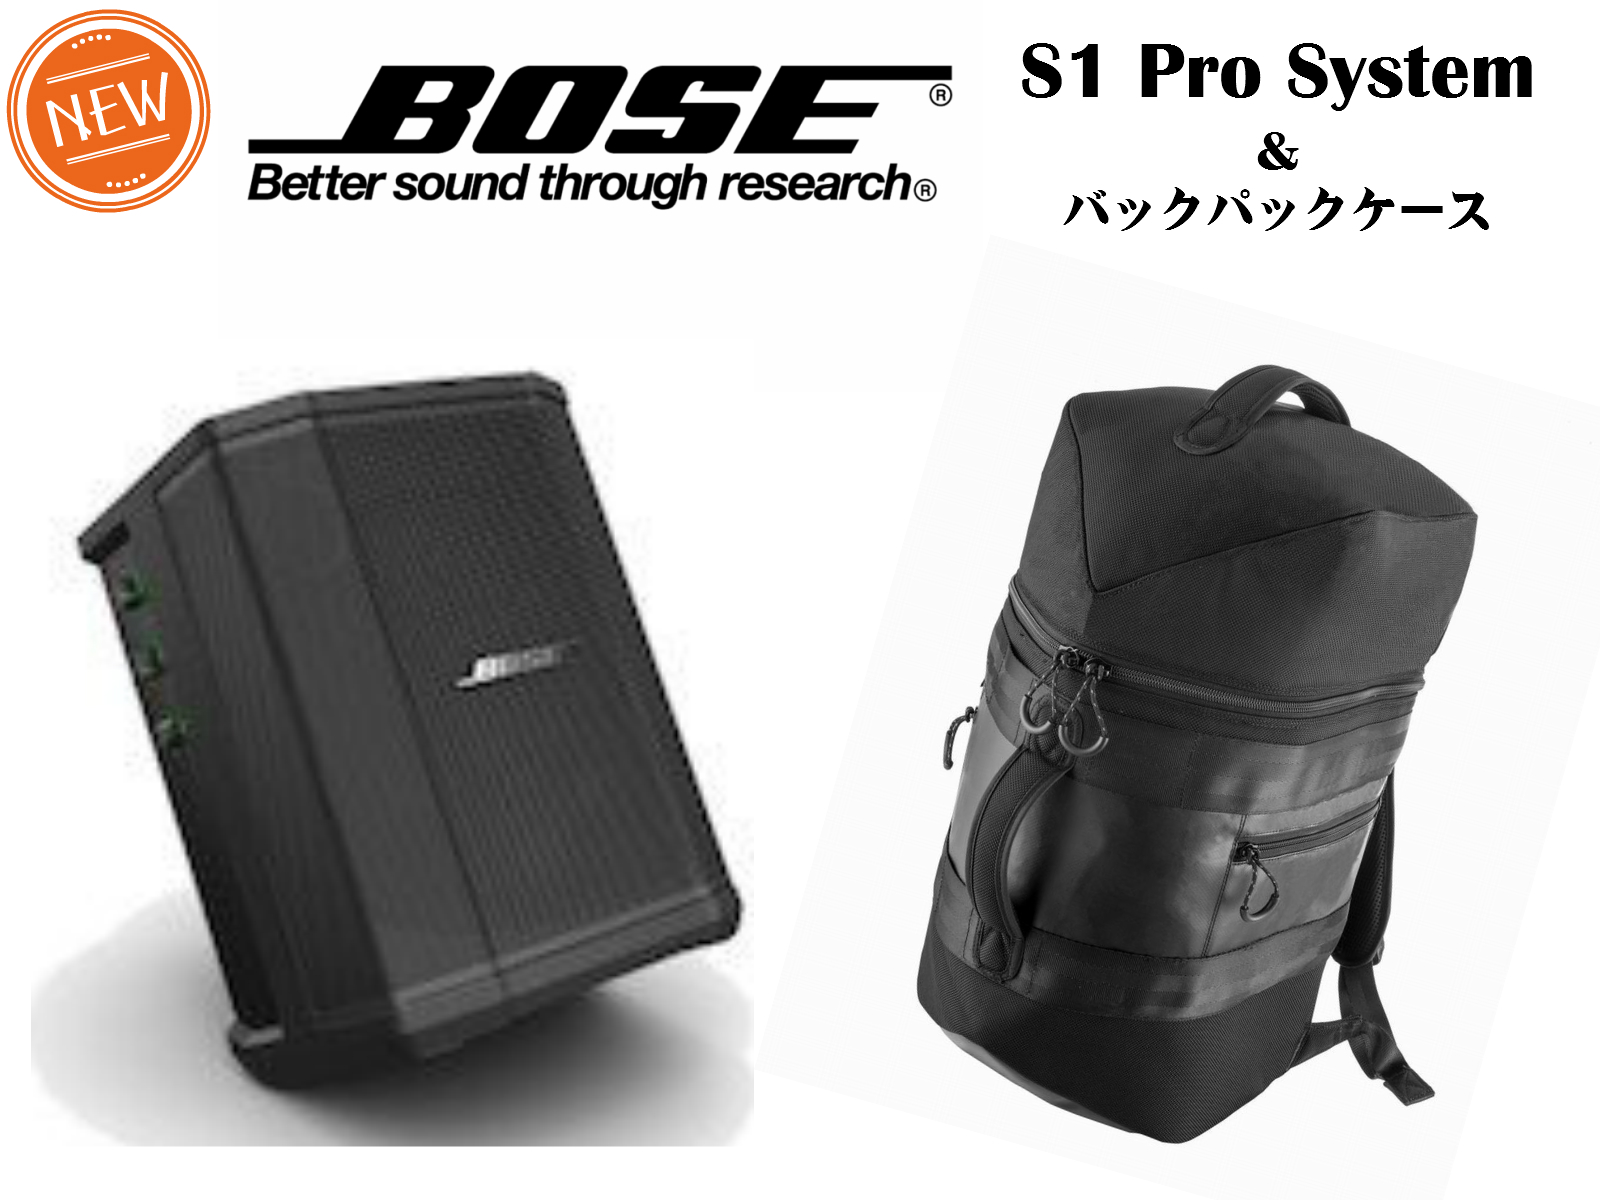 BOSE S1 Pro + バックパック(ケース)セット[Multi Position PA system][ボーズ][PAシステム][モニタースピーカー]